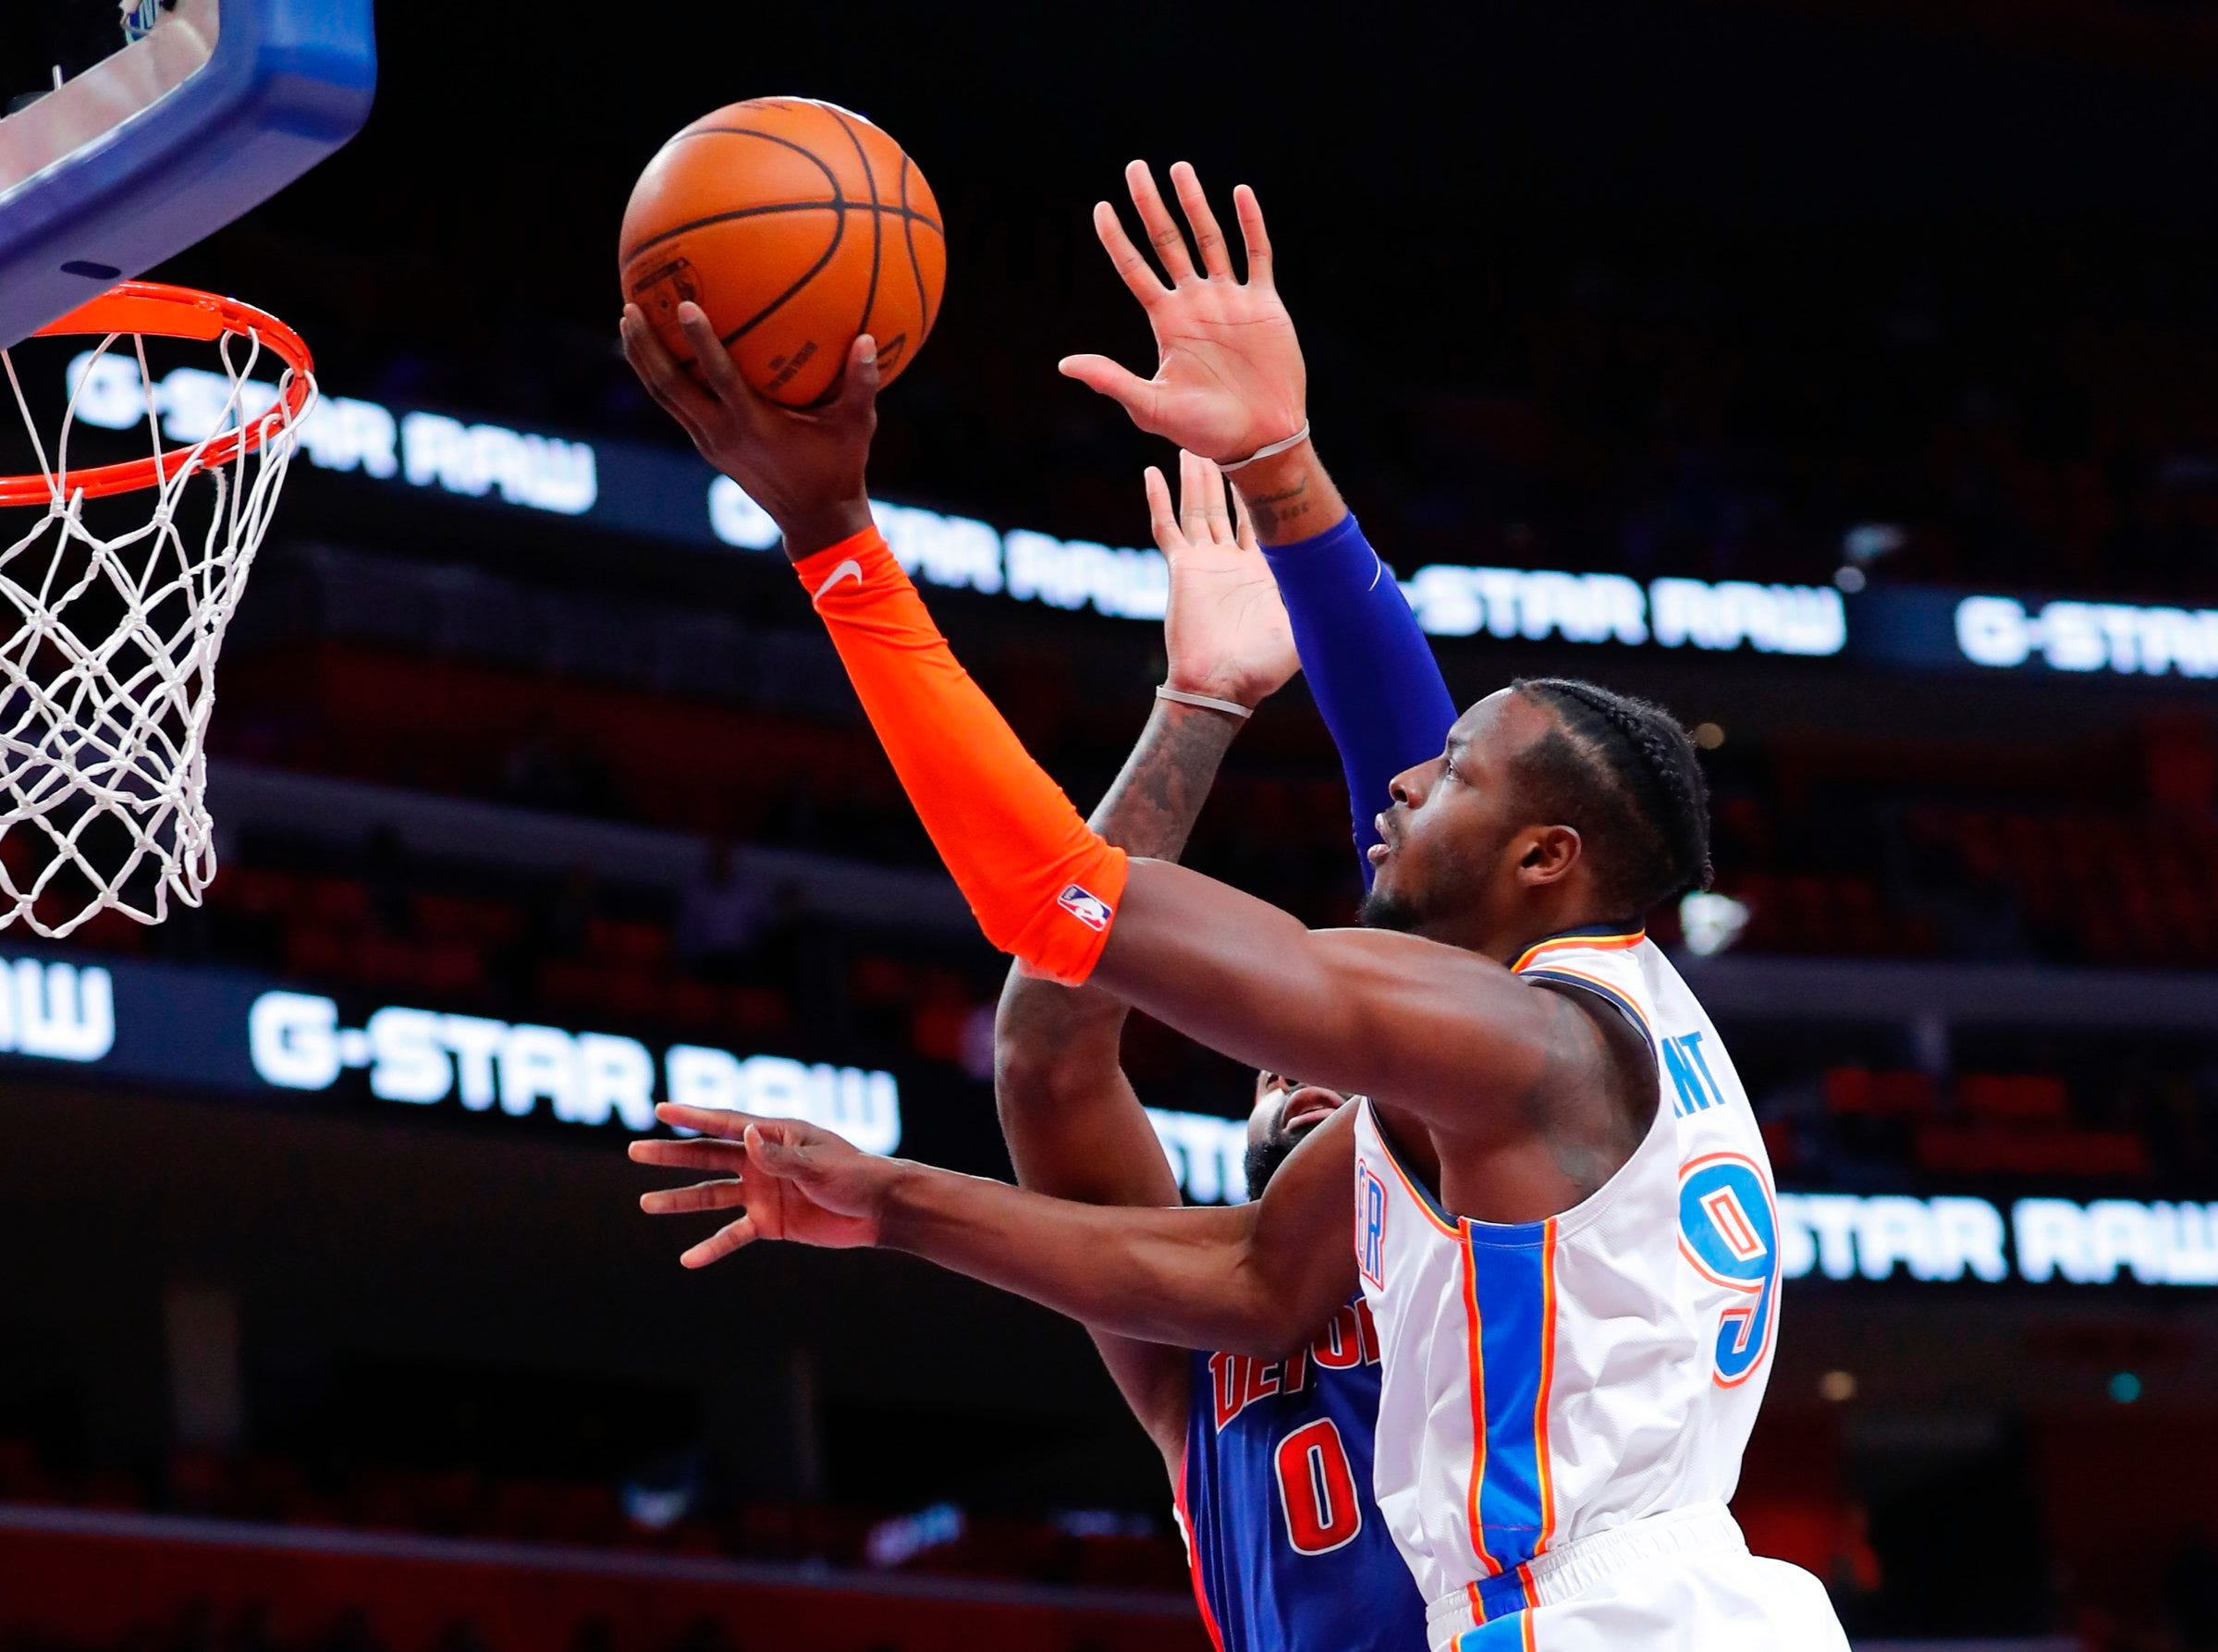 Oklahoma City Thunder forward Jerami Grant (9) goes to the basket on Detroit Pistons center Andre Drummond (0) in the first half at Little Caesars Arena.